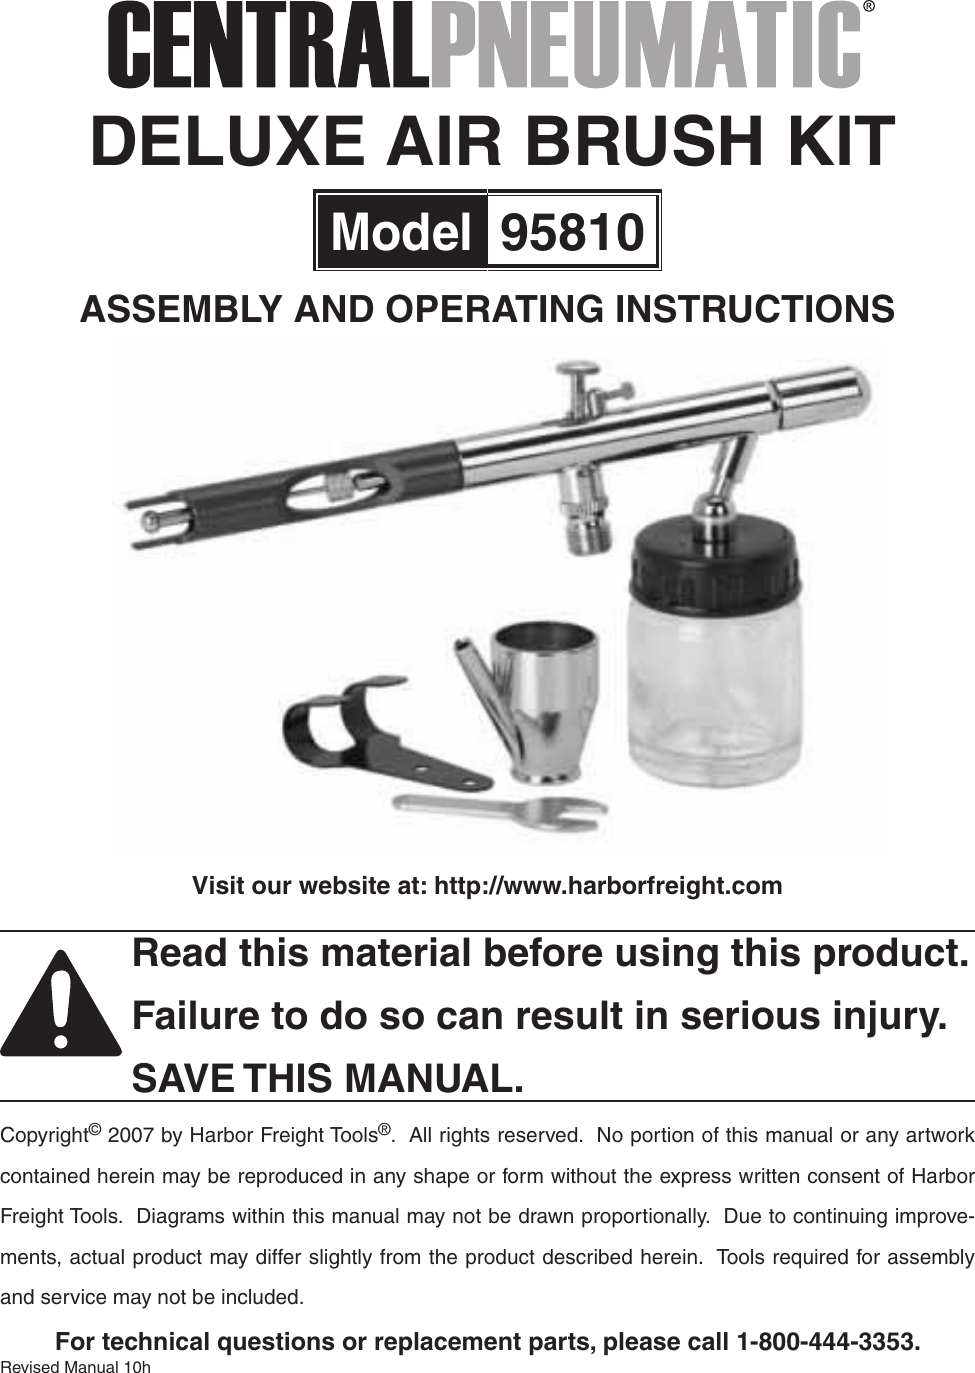 Harbor Freight 3 4 Oz Deluxe Airbrush Kit Product Manual